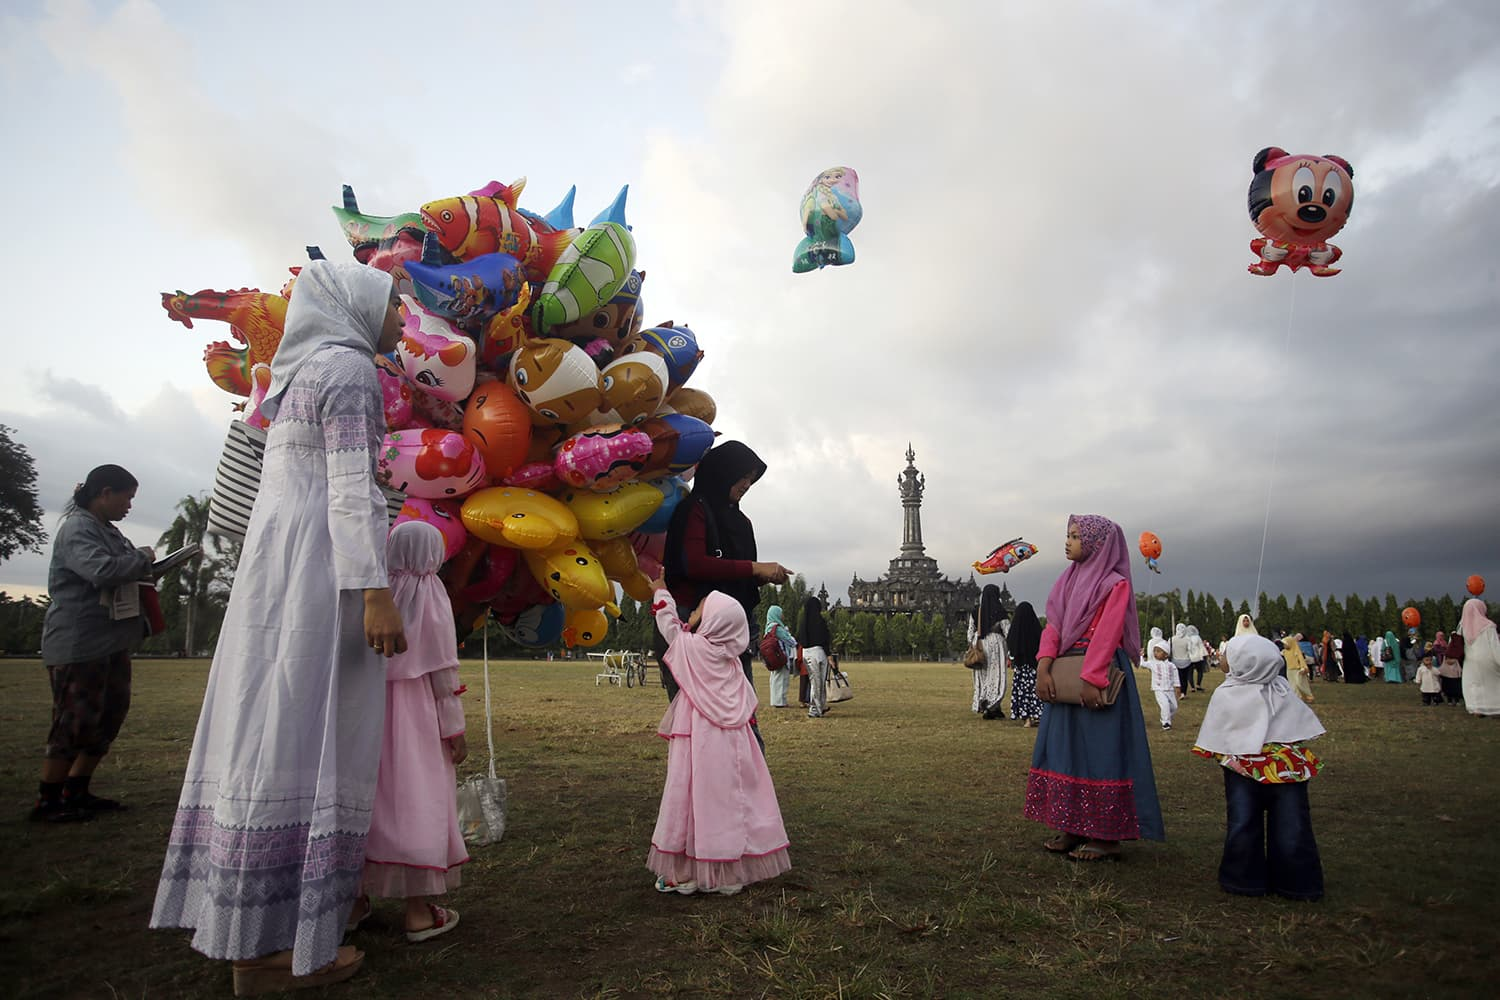 Children get balloons as they attend Eid prayers in Bali, Indonesia. — AP